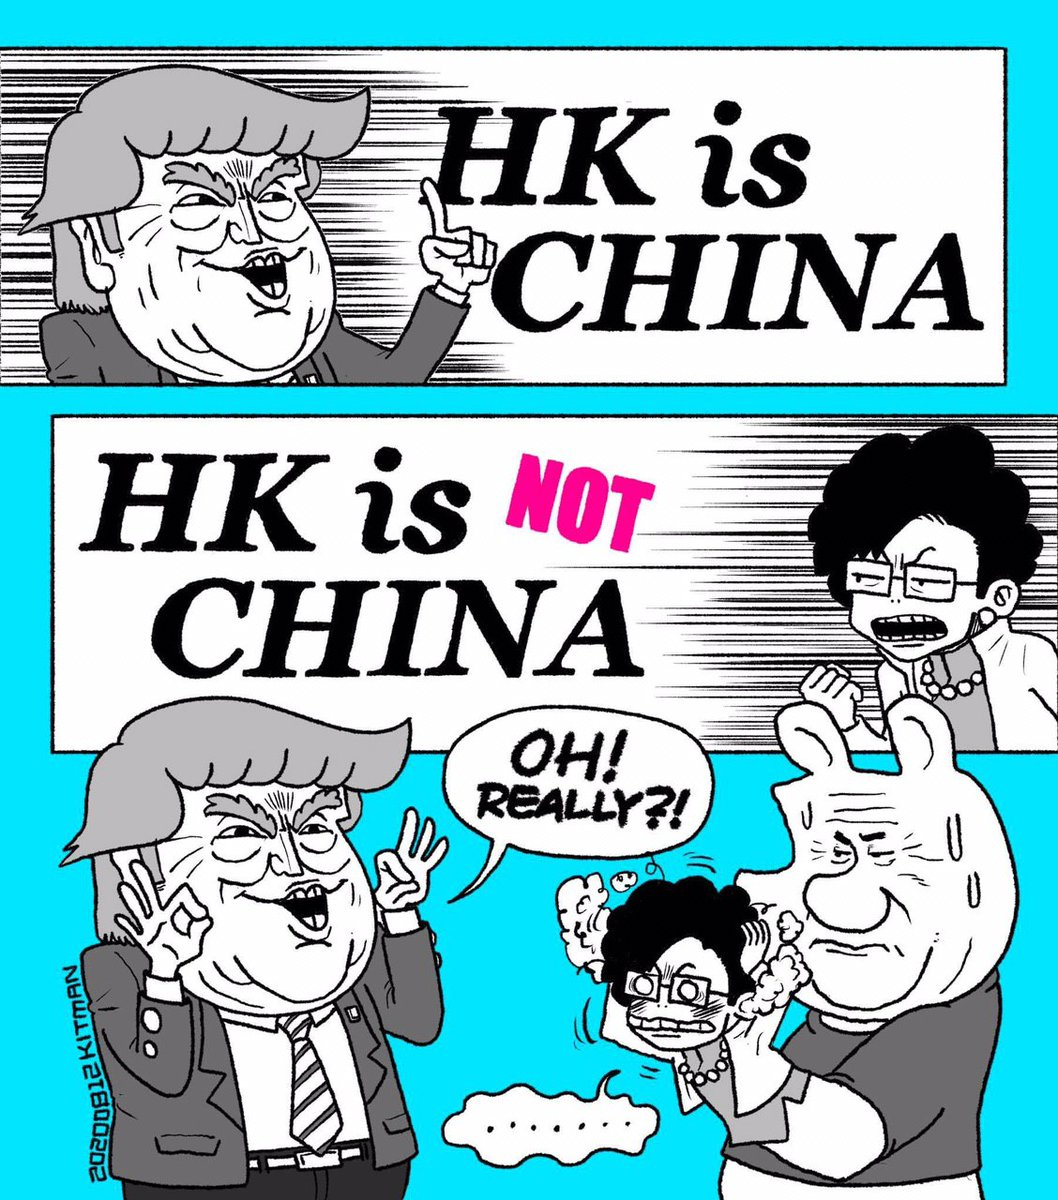 """HK government refused to state products exported from here is """"Made in China"""". So #HongKong is #China or is NOT China? https://t.co/l0nTCPrarz"""